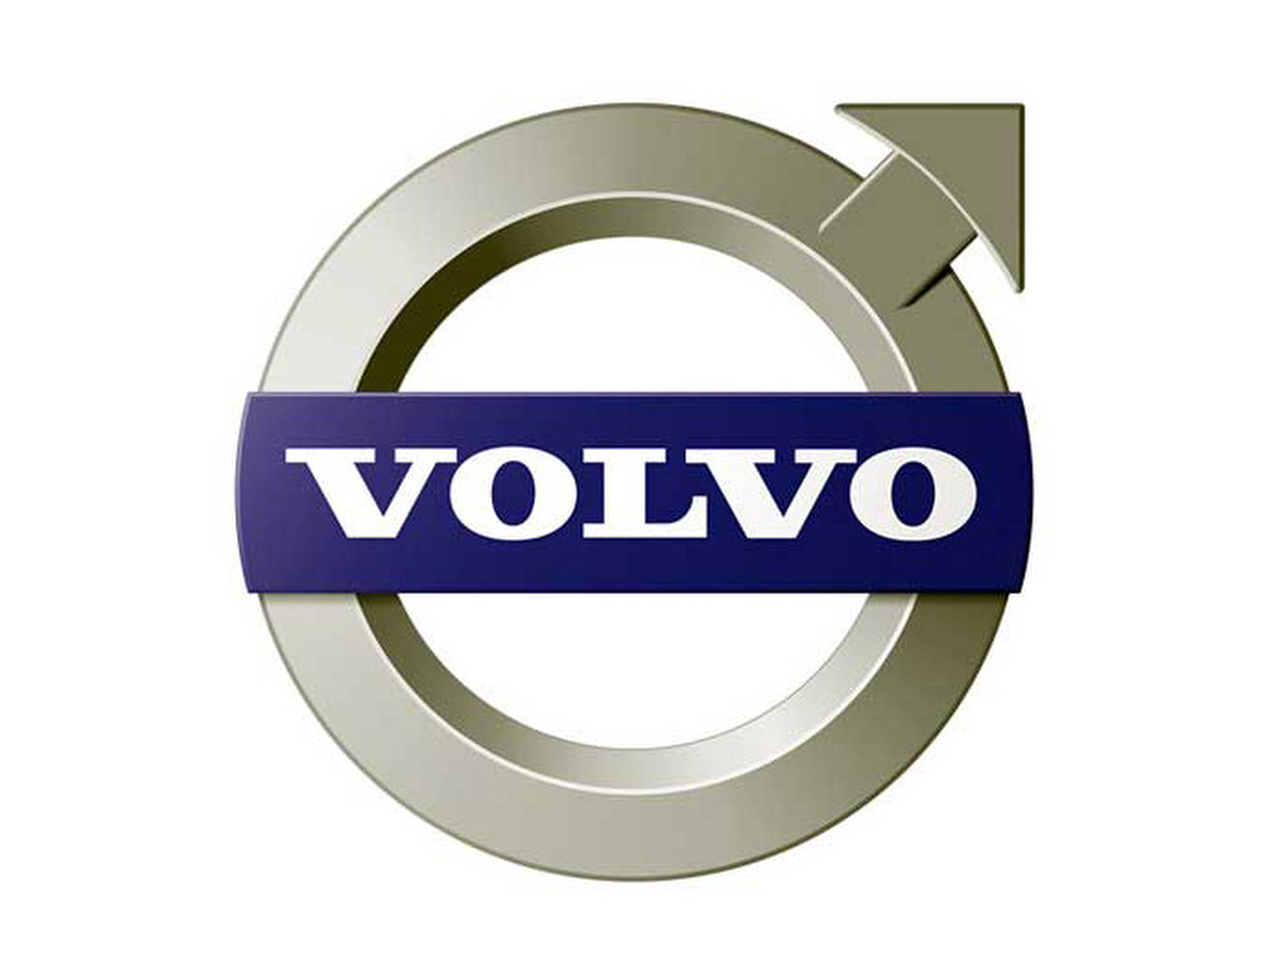 volvo logo 2013 geneva motor show. Black Bedroom Furniture Sets. Home Design Ideas